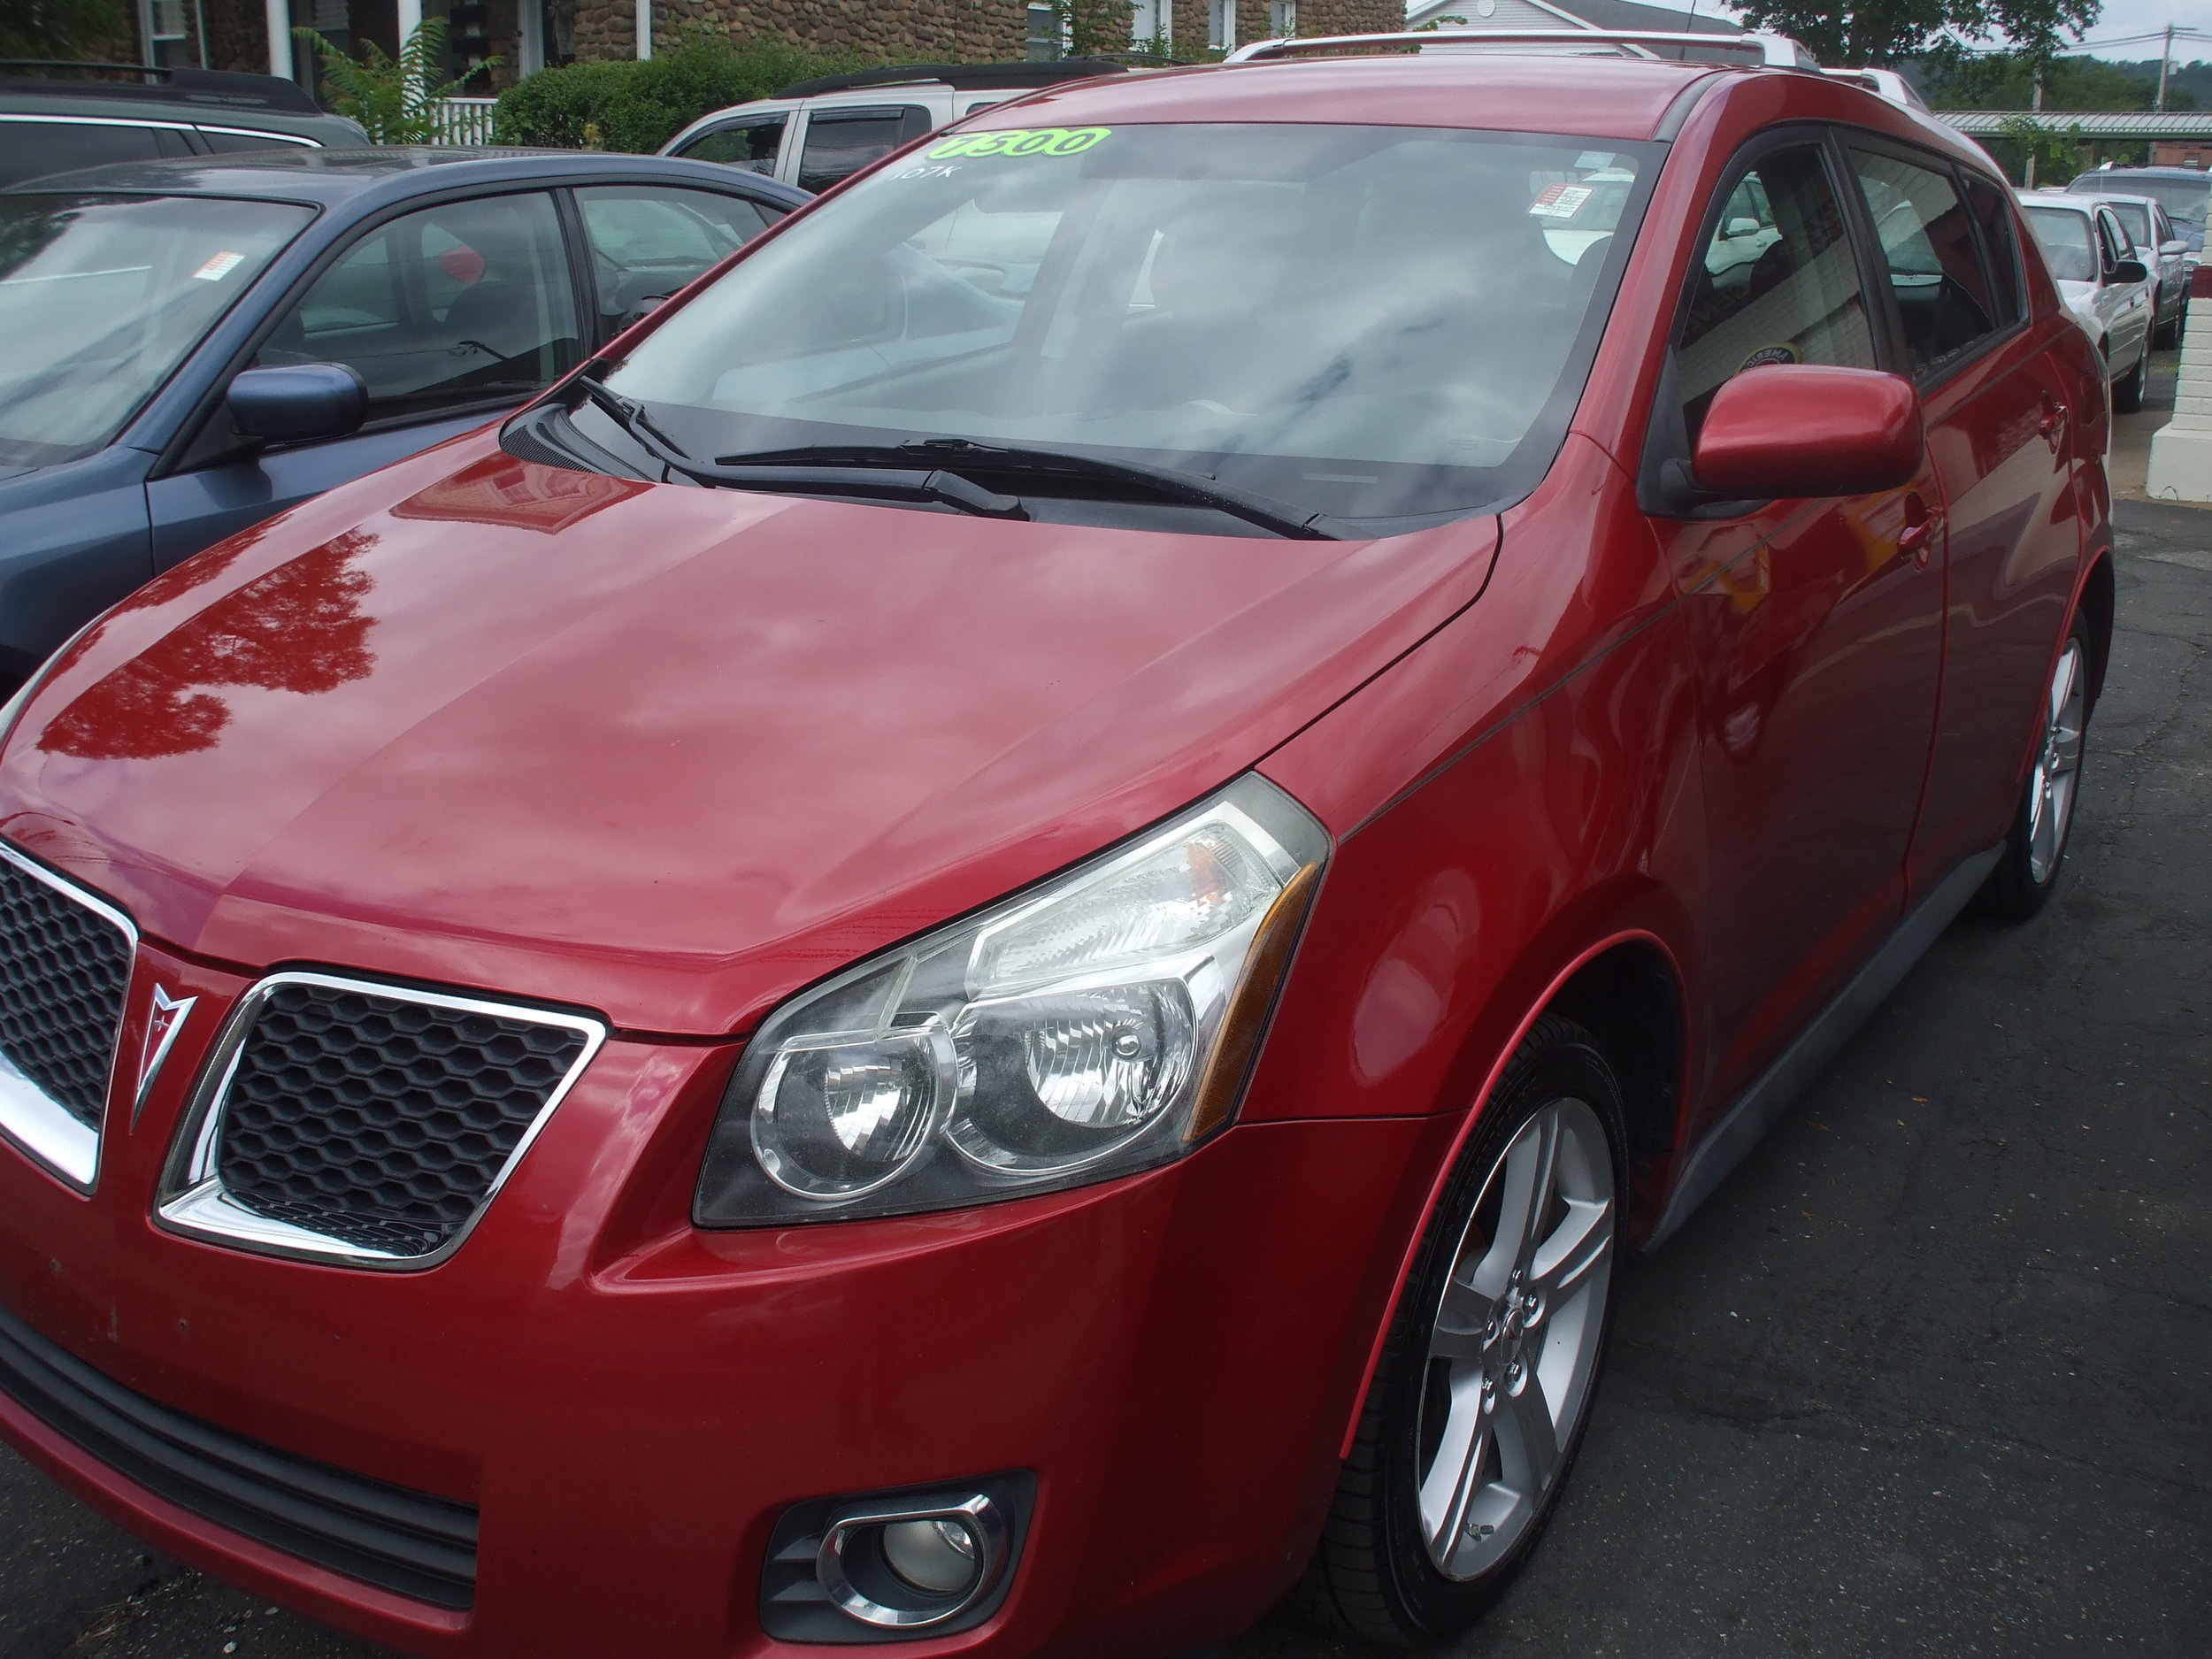 2009 Pontiac Vibe 4 door $7,500  red auto pw pl Great Condition Call or stop by Cerrito's Auto Sales 280 N. Colony St Wallingford Ct 06492. 203-265-6142